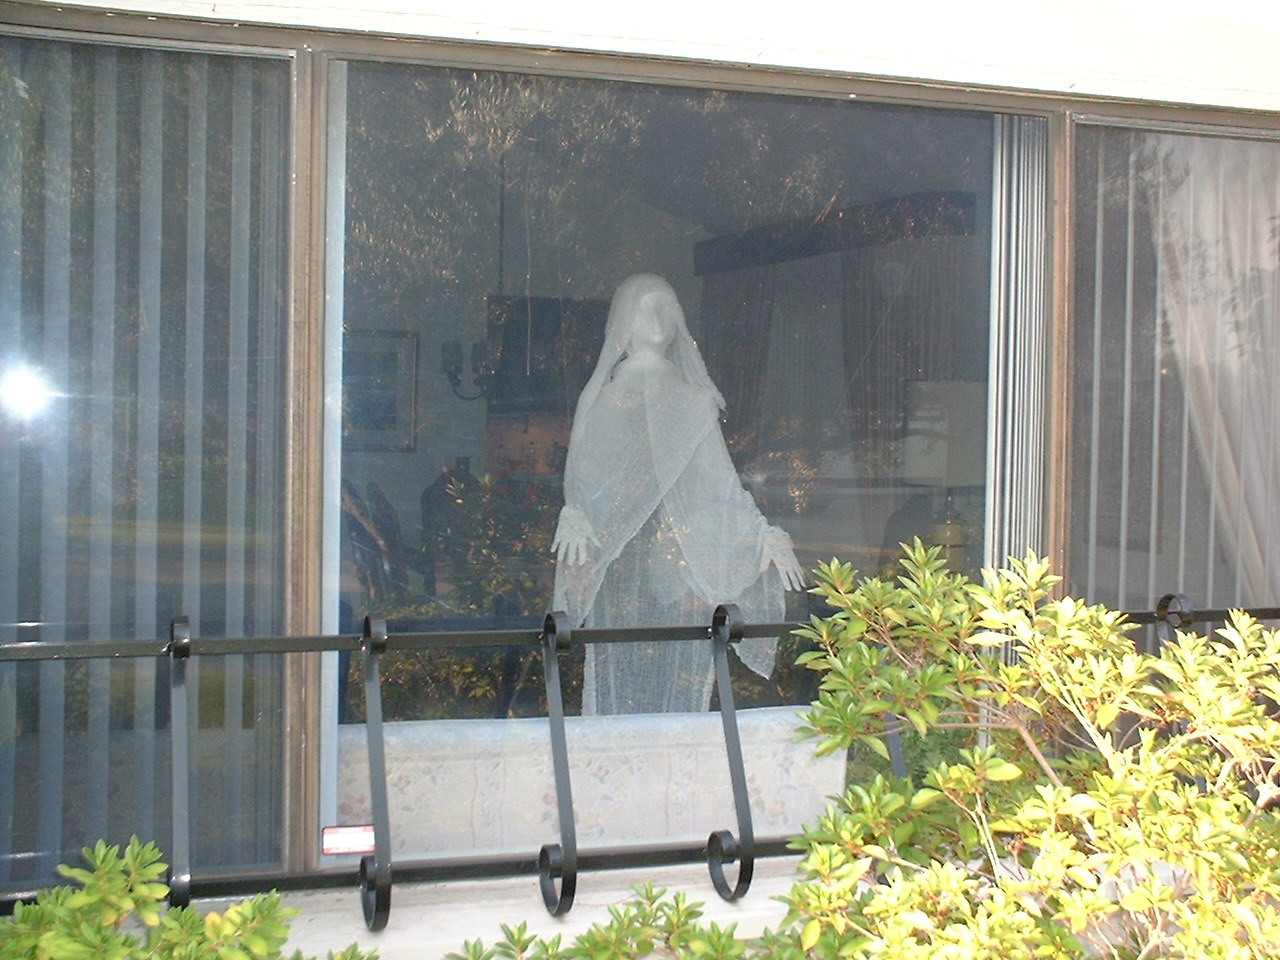 Ghost In Window Halloween Prop Made By Alan